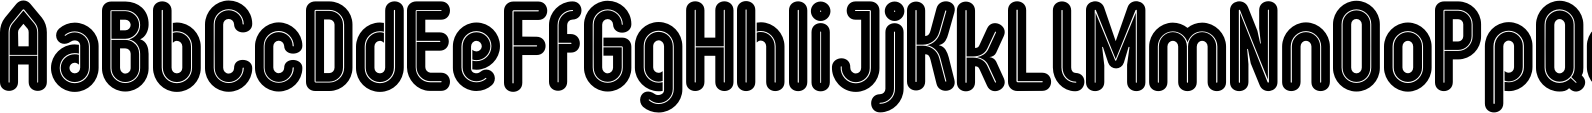 Oval Double Font